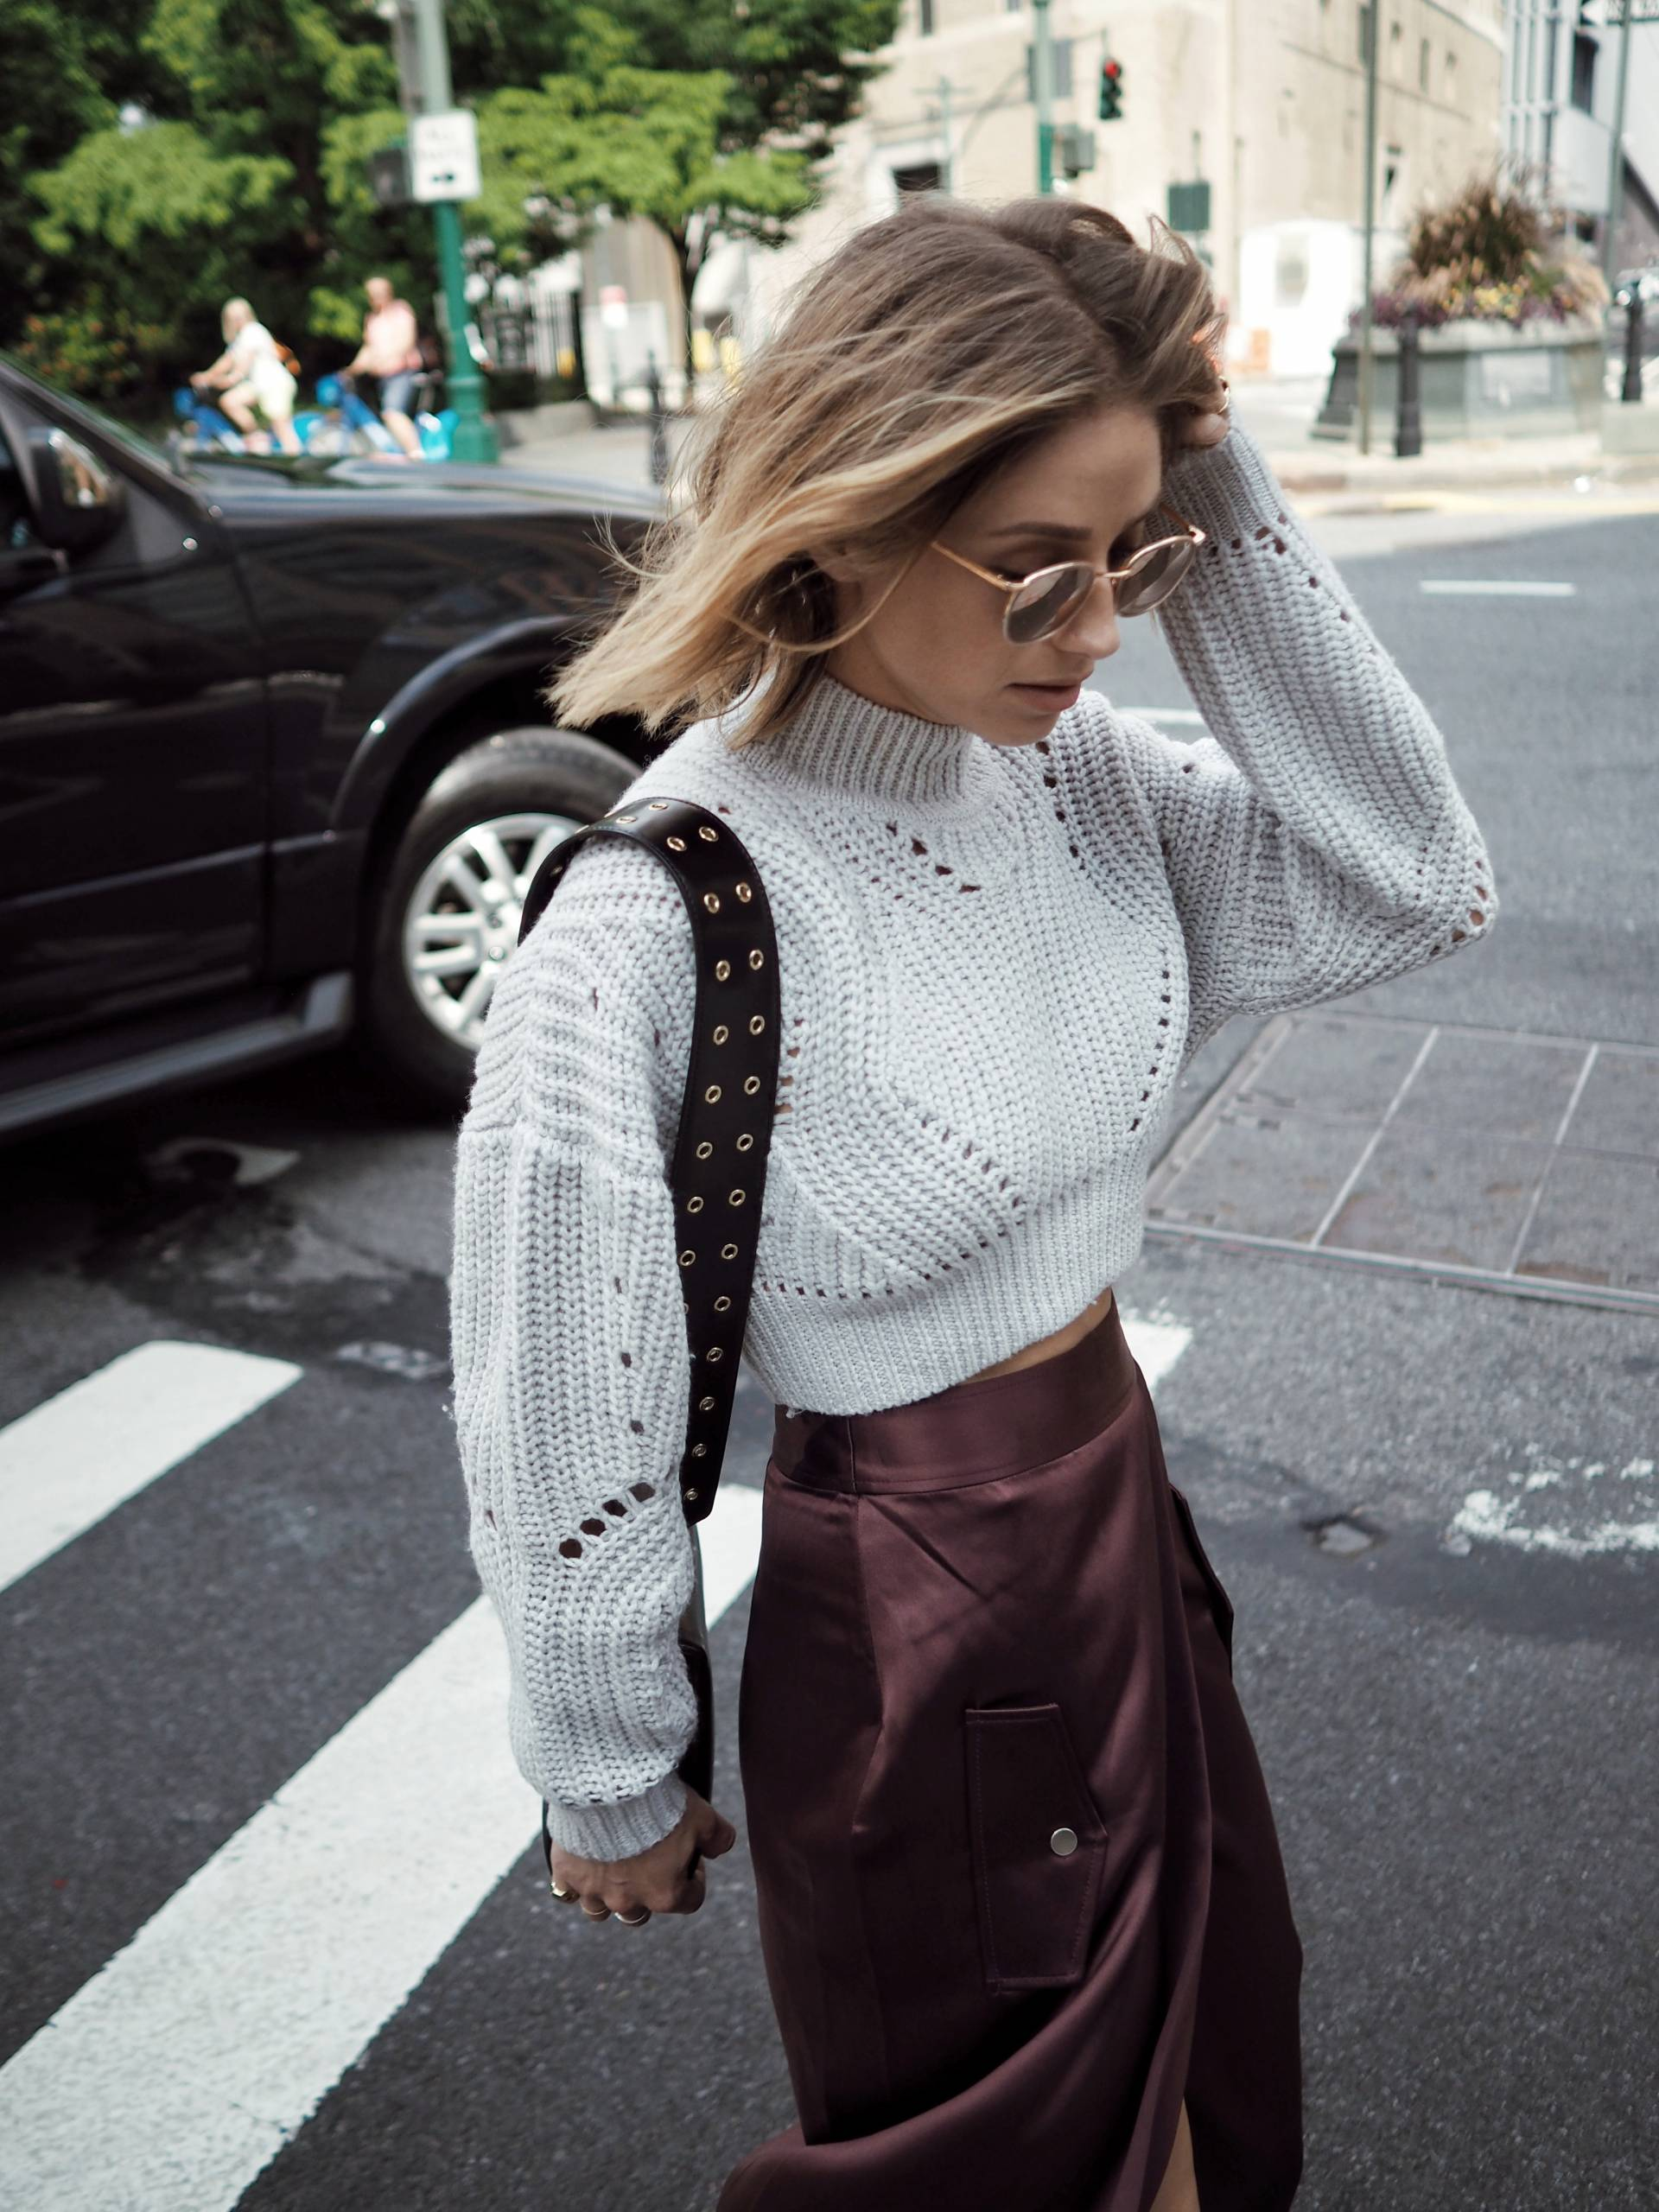 new york fashion week street style in dion lee skirt, aritzia sweater, marc jacobs bag